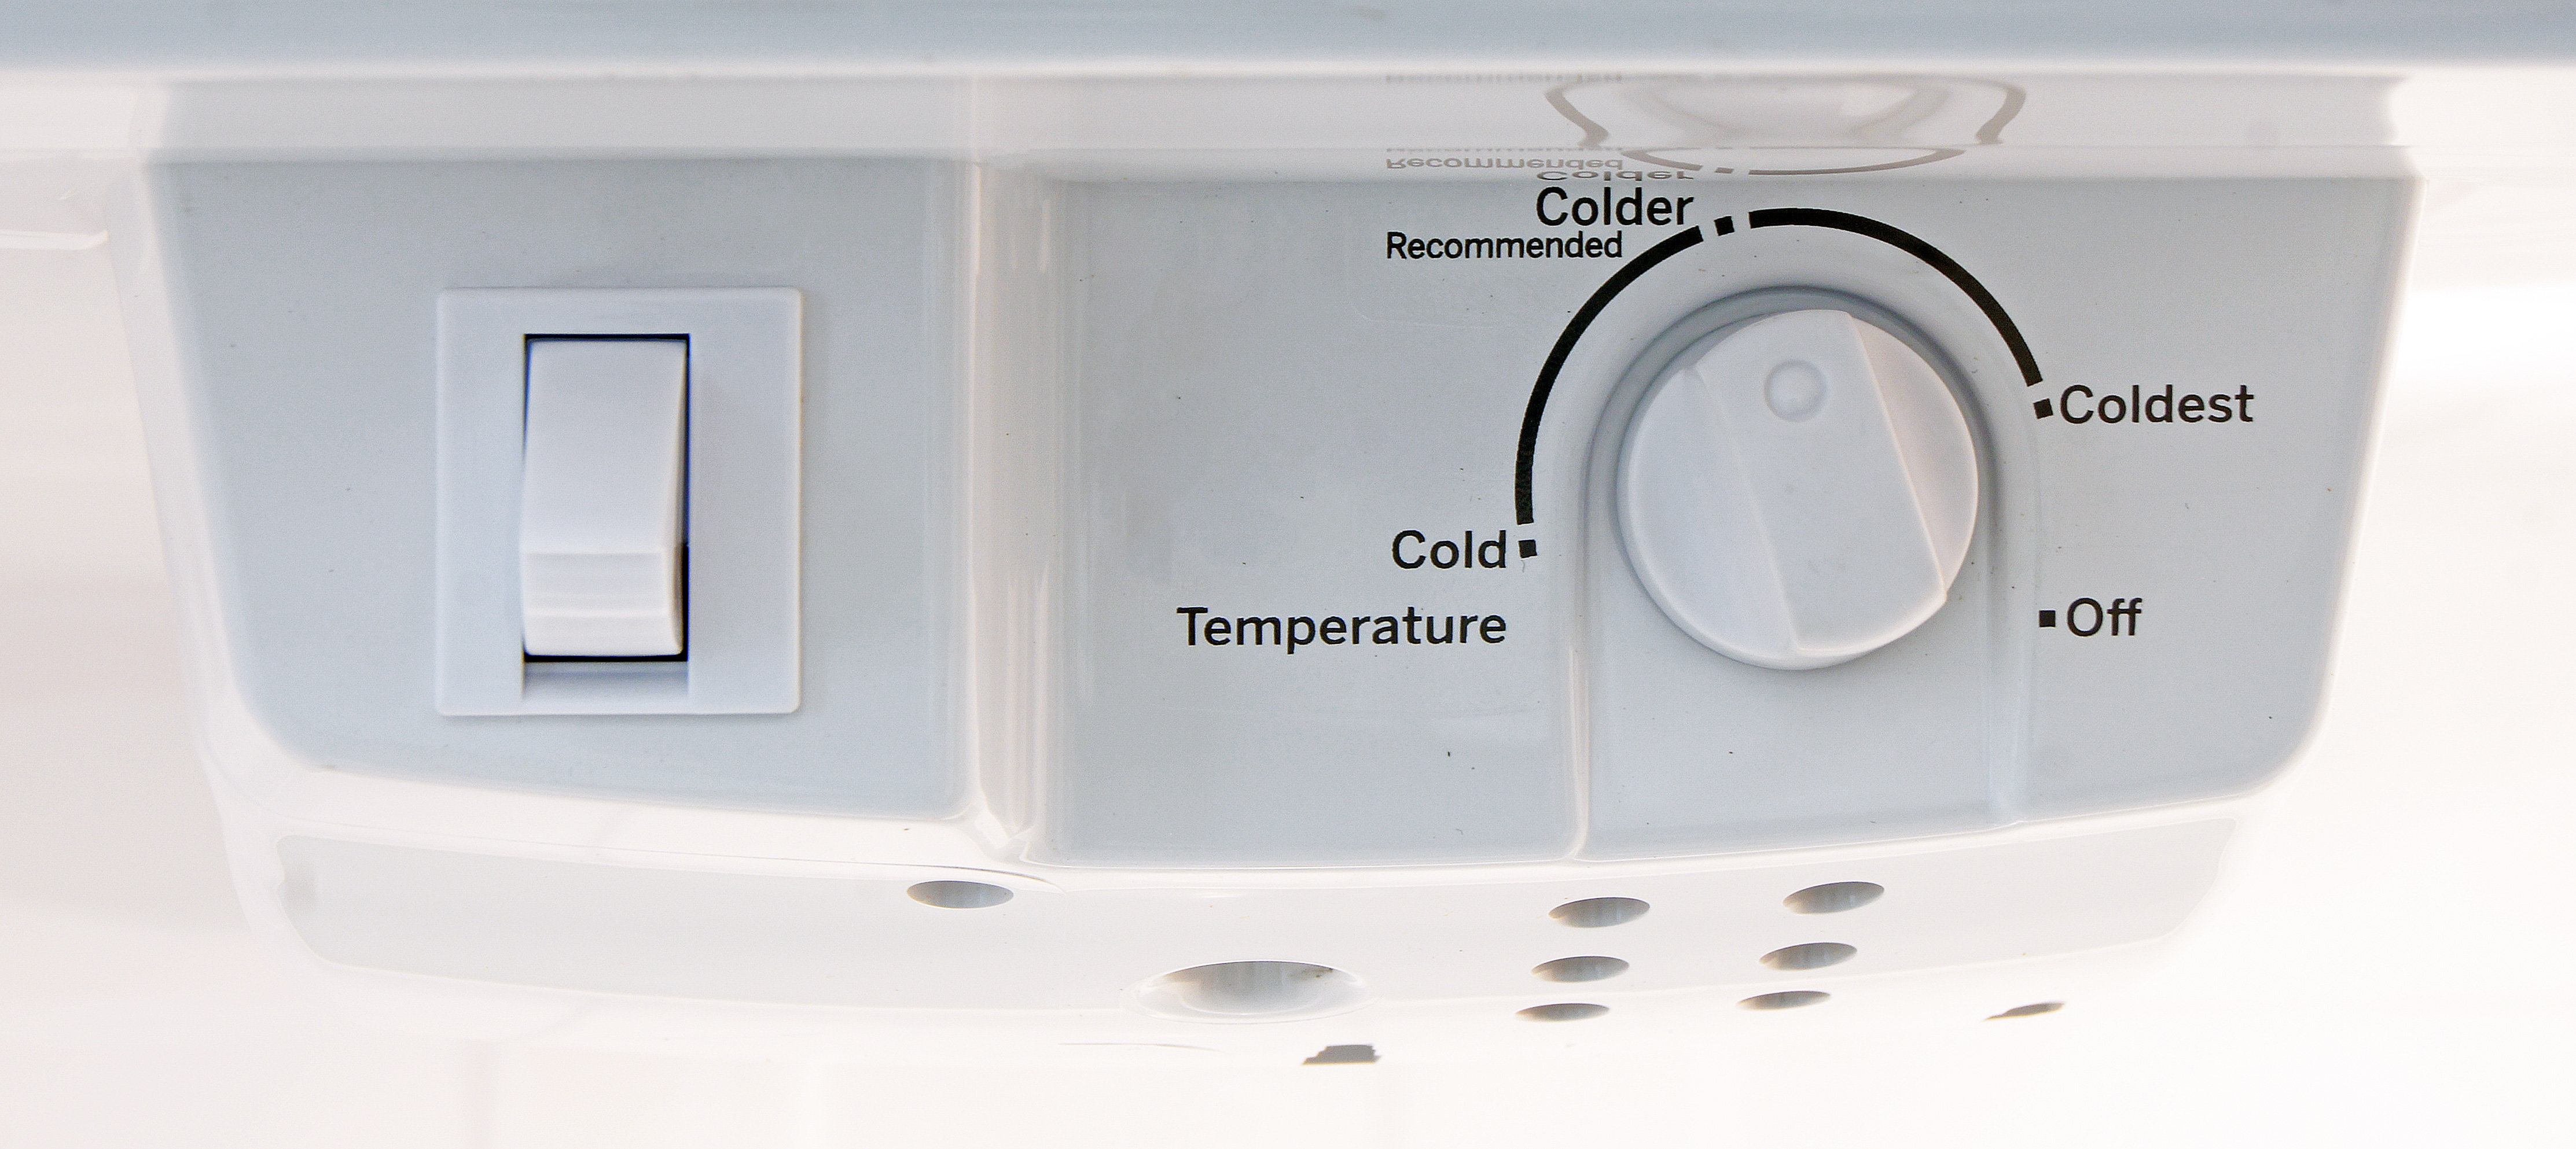 Despite the label, the GE GTE16GSHSS's recommended Colder setting isn't quite cold enough.